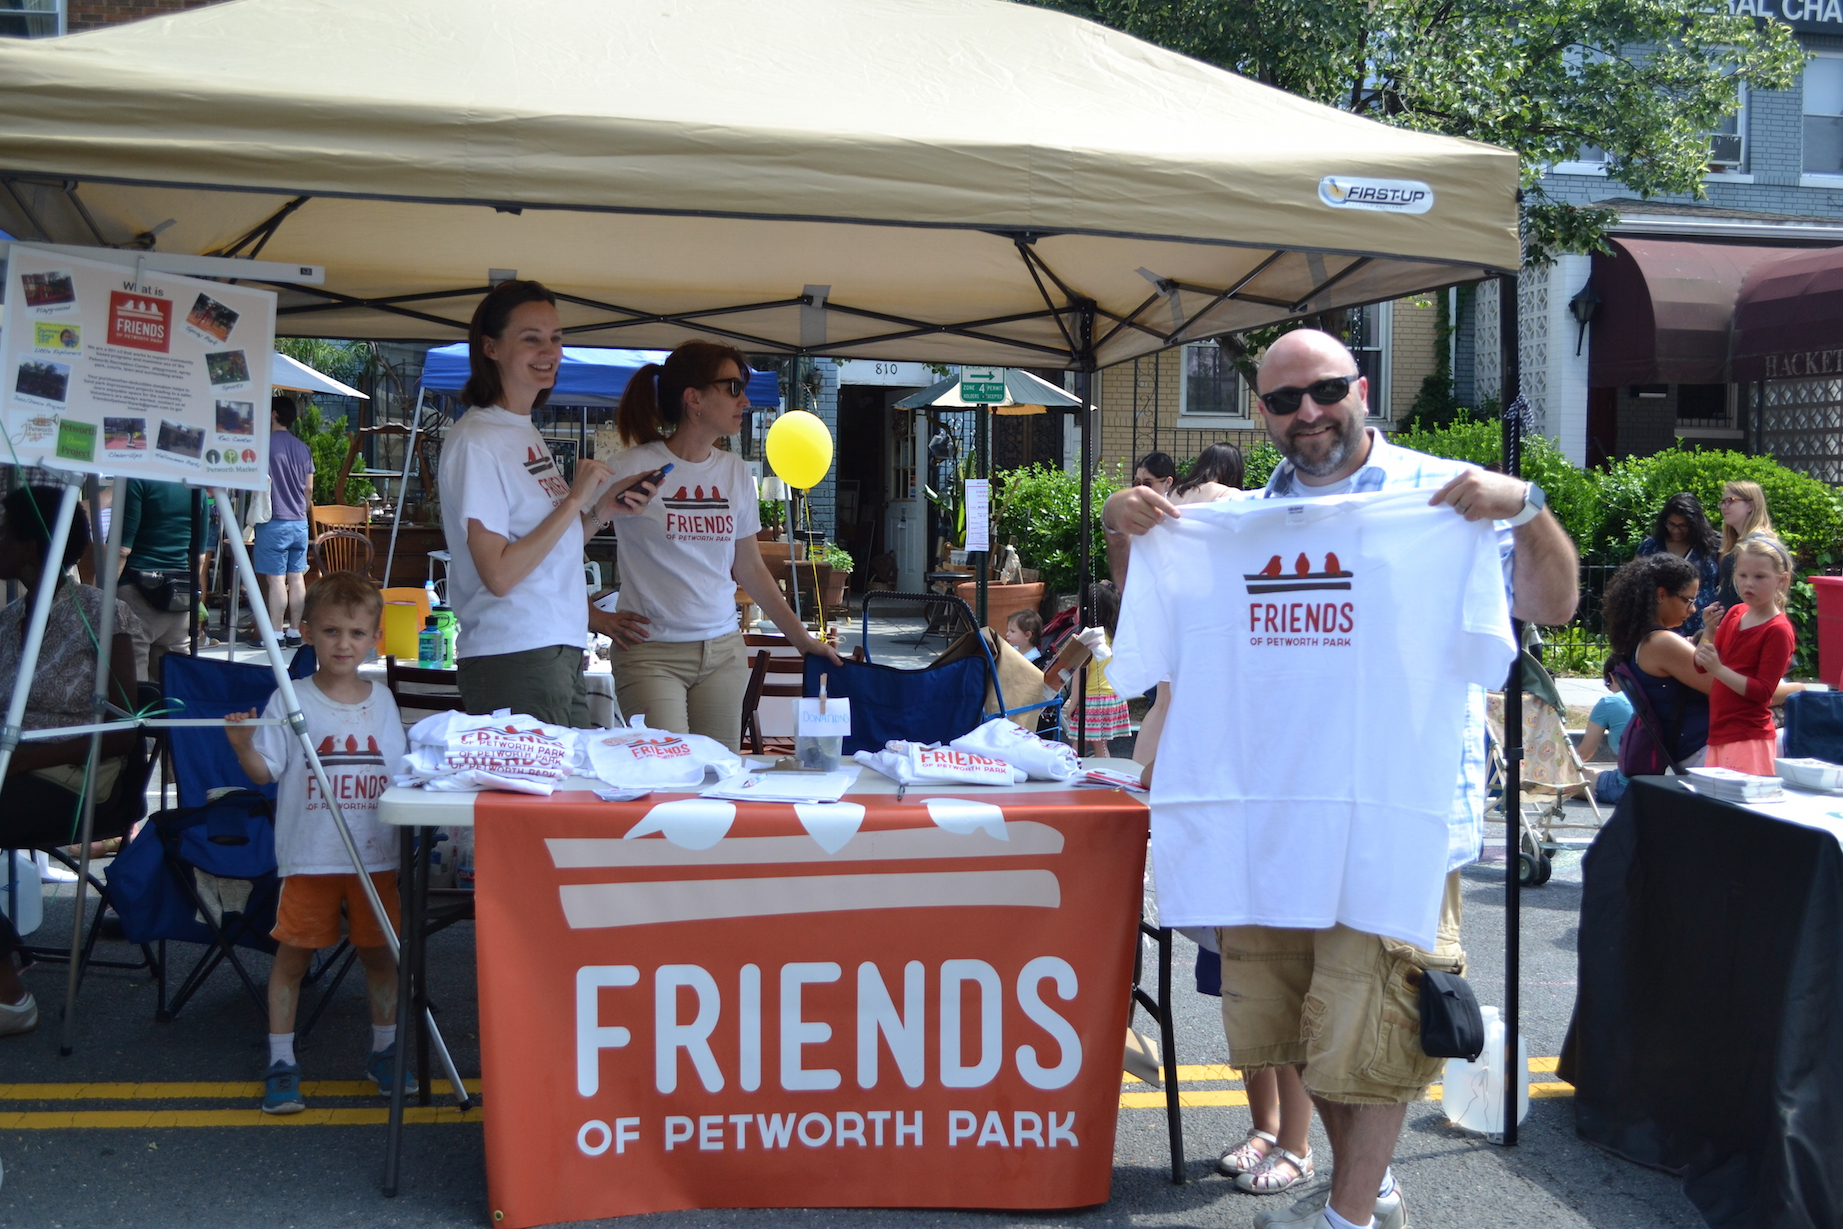 Drew buying a shirt and supporting the Friends of Petworth Park